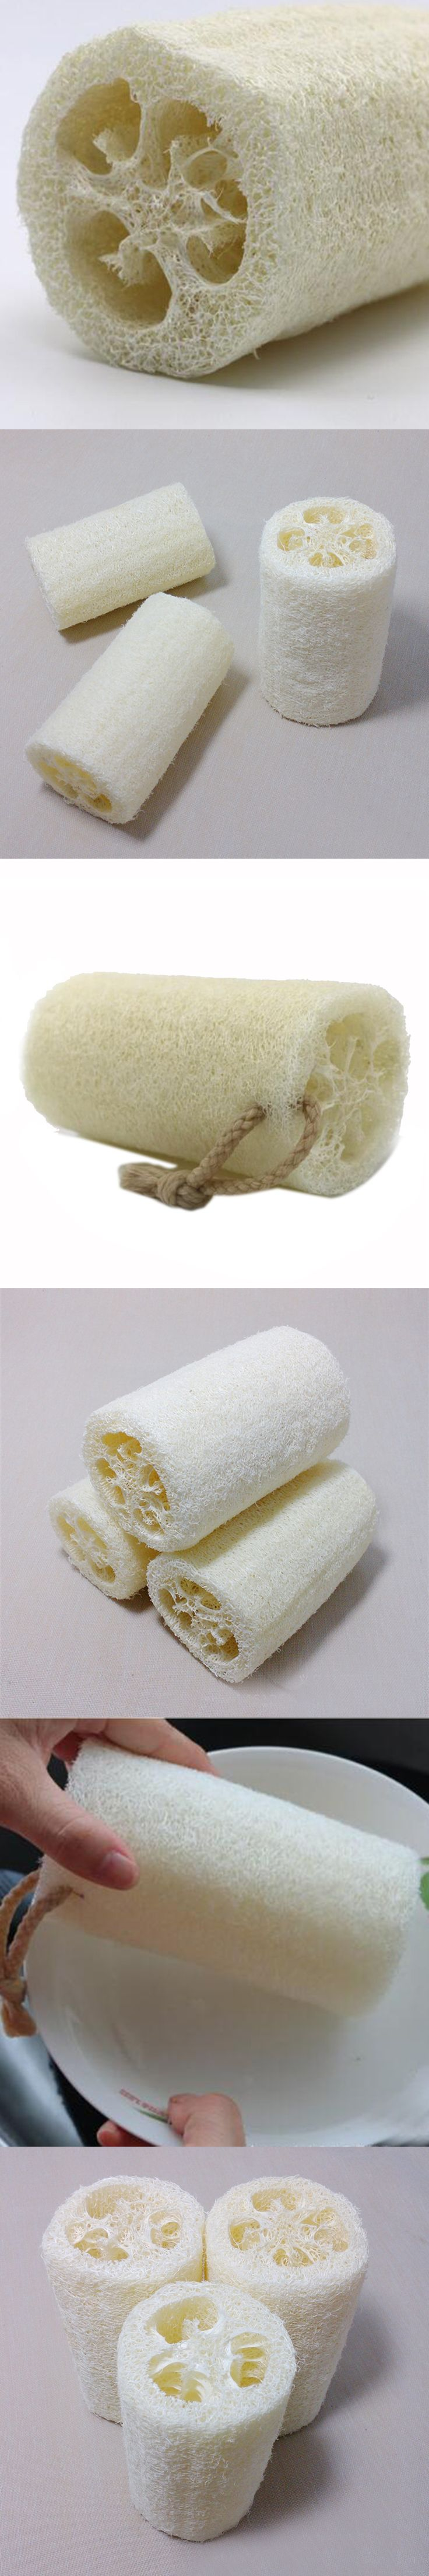 1 pc Natural Loofa Bath Shower Spa Cleans Loofah Sponge Body Scrubber Horniness Remover Luffa Body Bowl Pot Washing